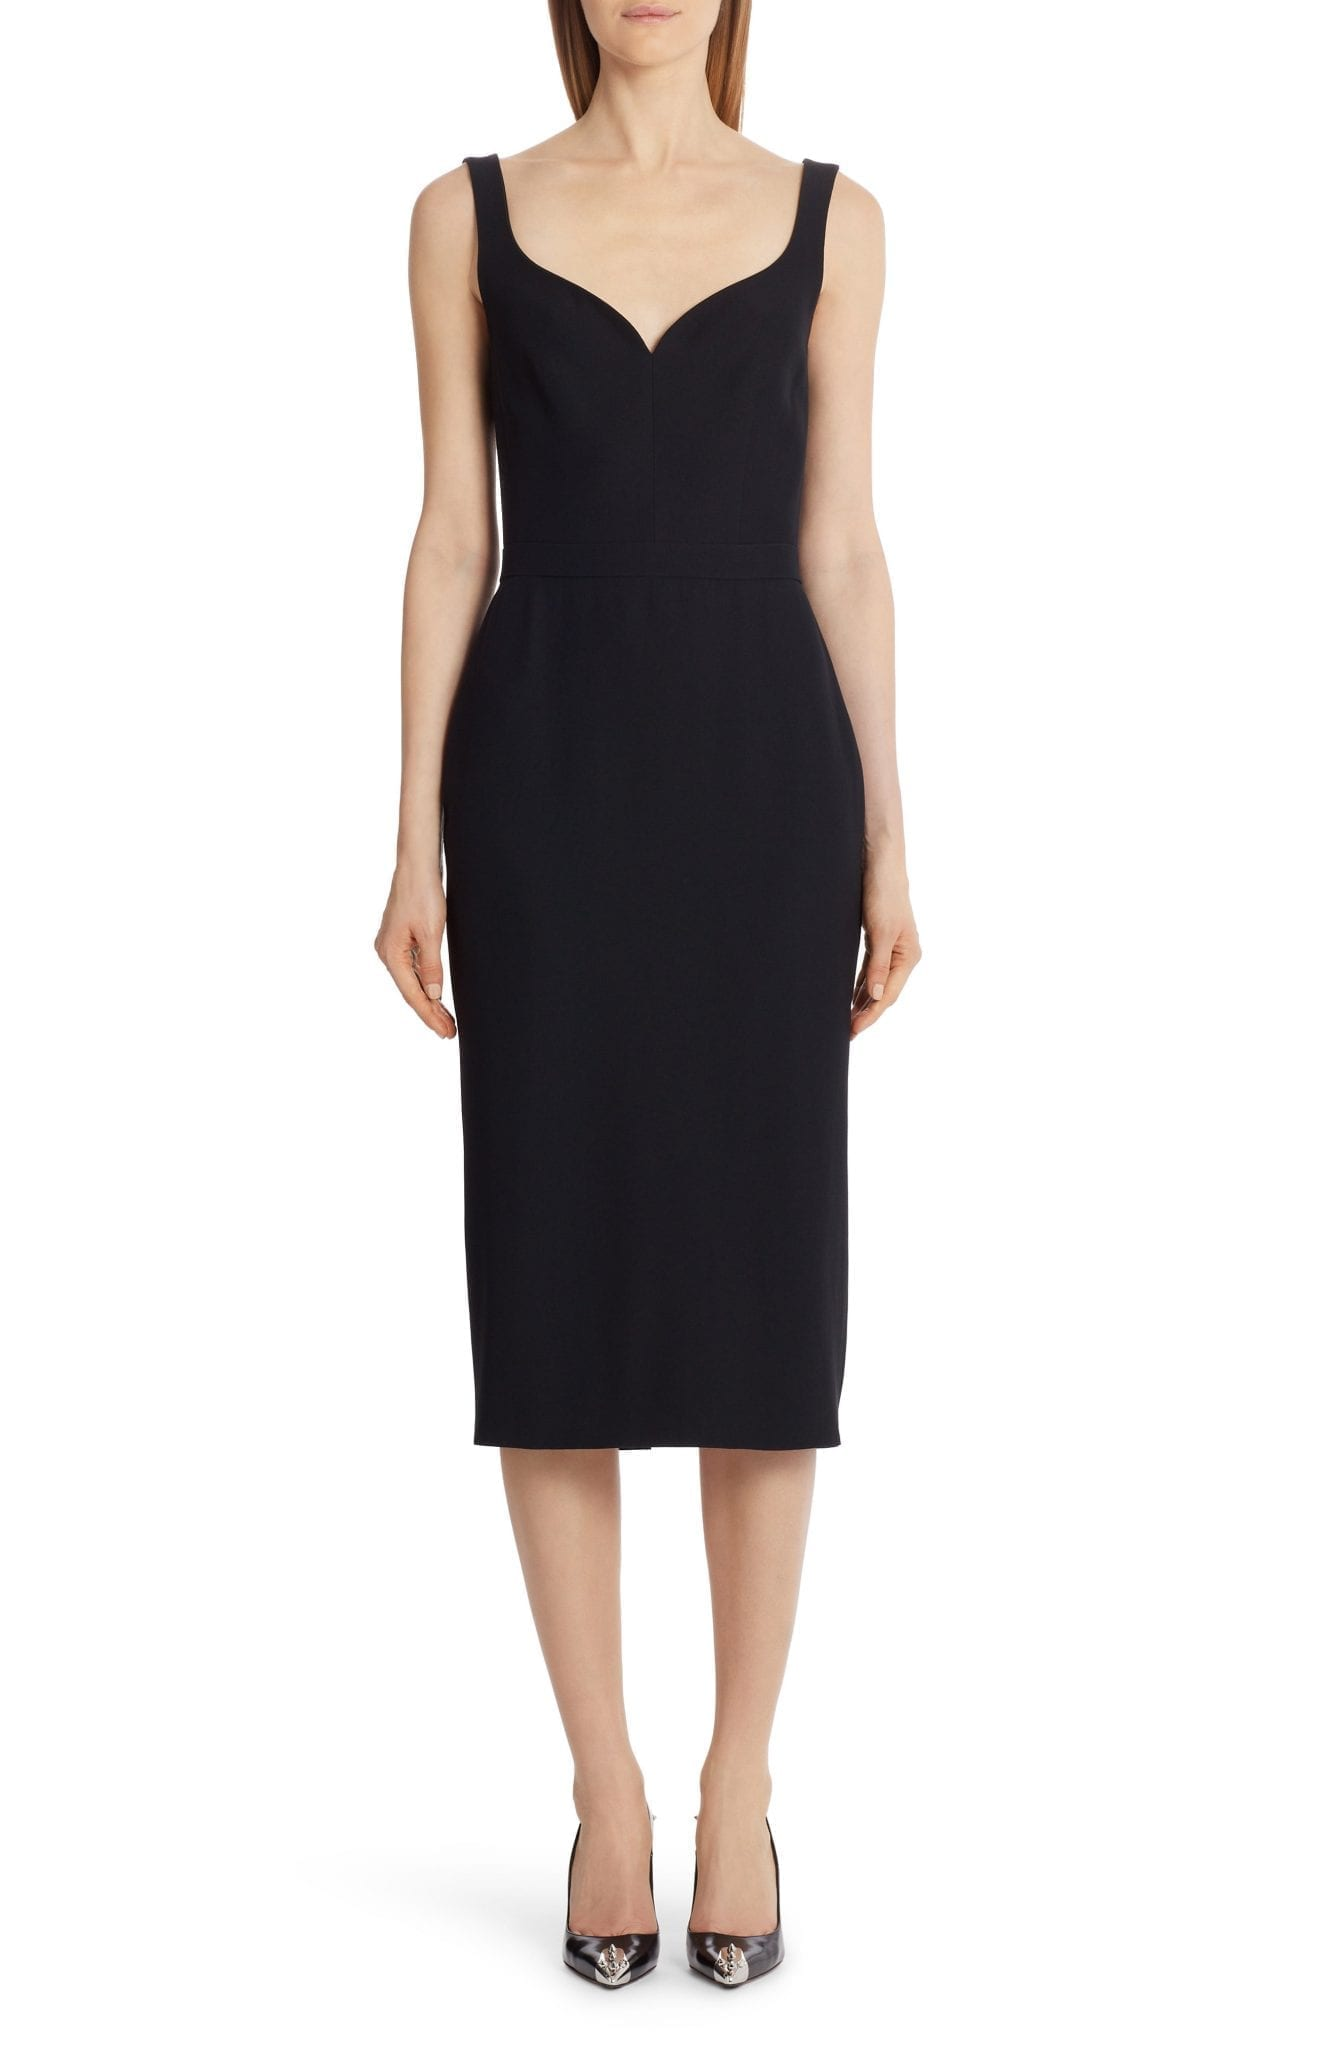 ALEXANDER MCQUEEN Sweetheart Pencil Cocktail Dress